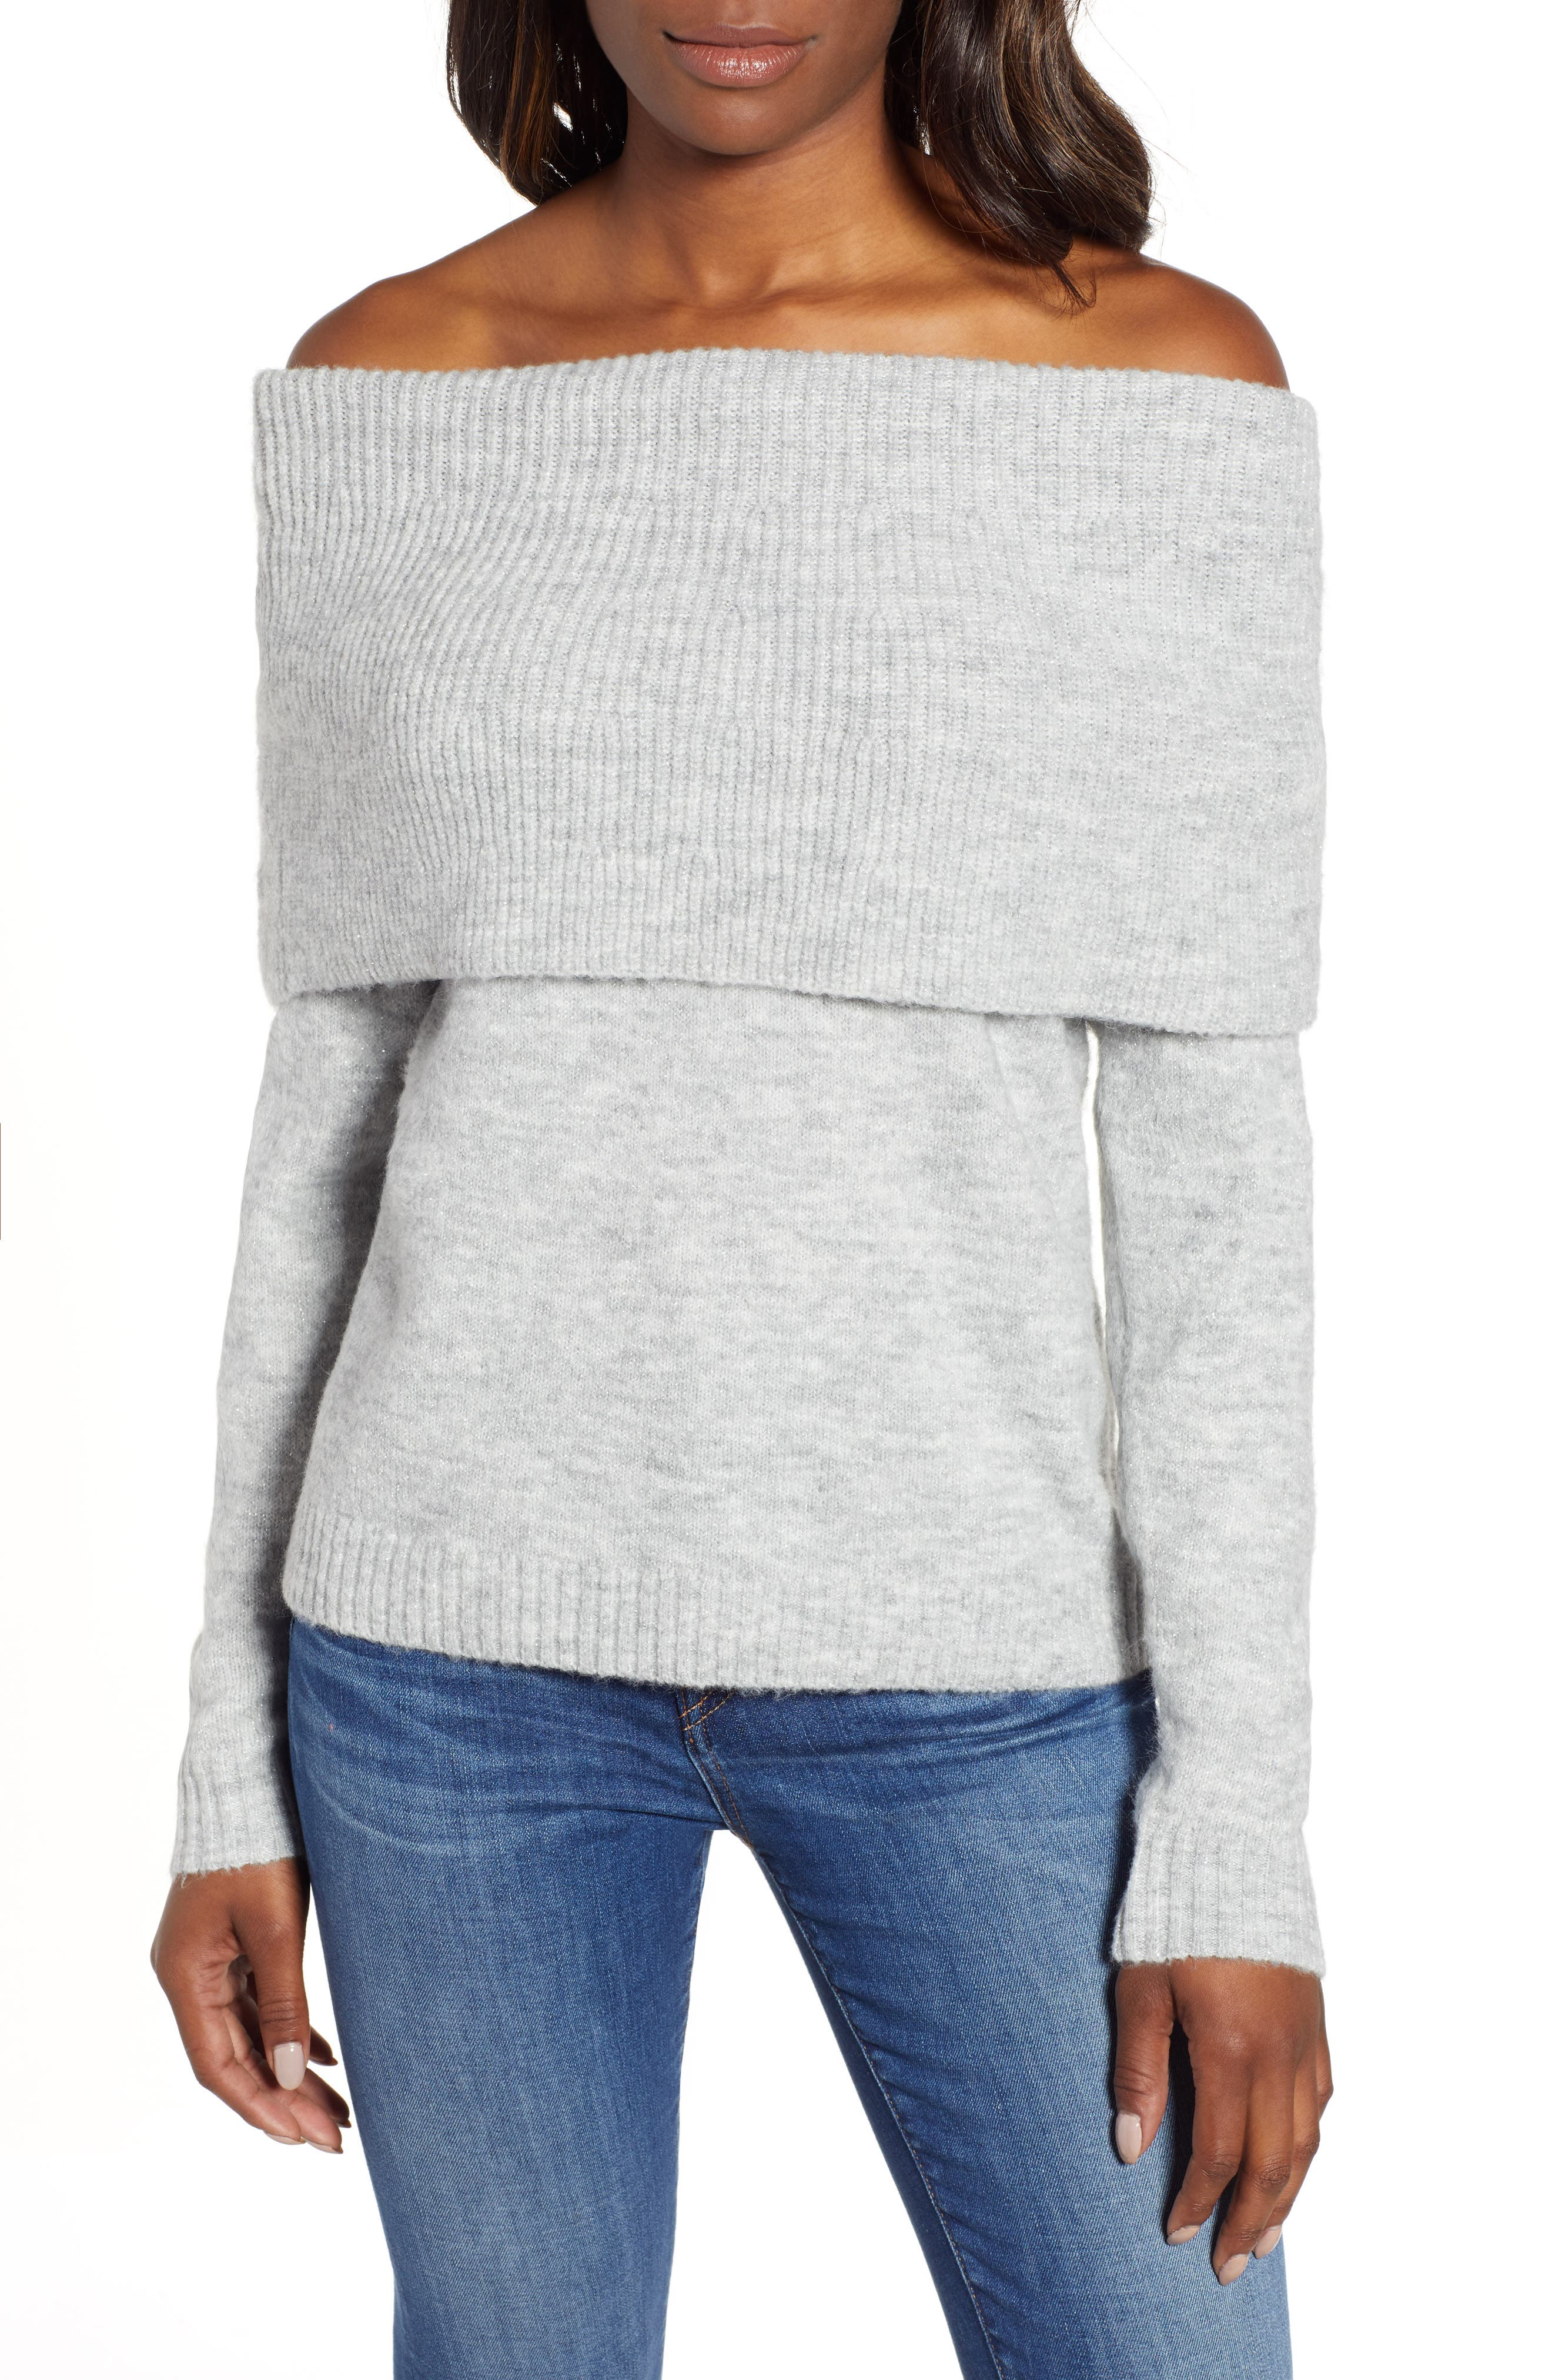 sweater for pear shaped